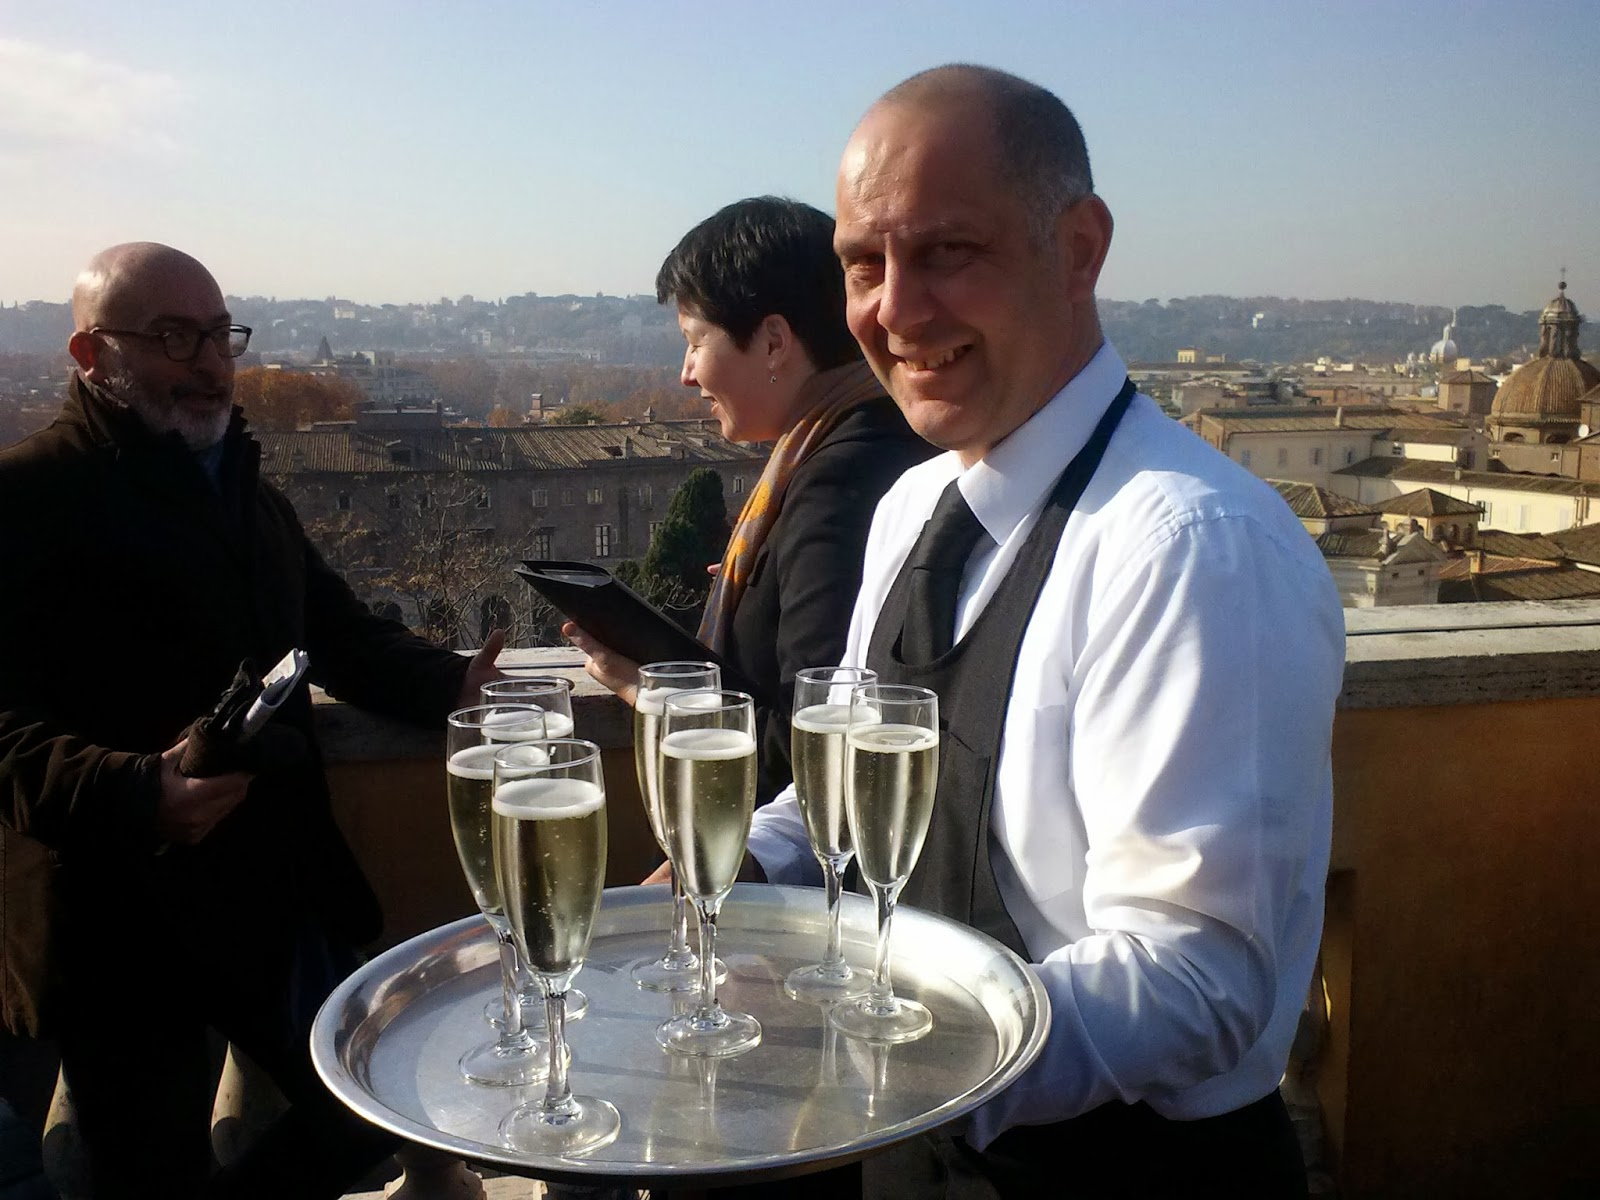 Thewineblog Four Days In Rome By Philip S Kampe And Maria